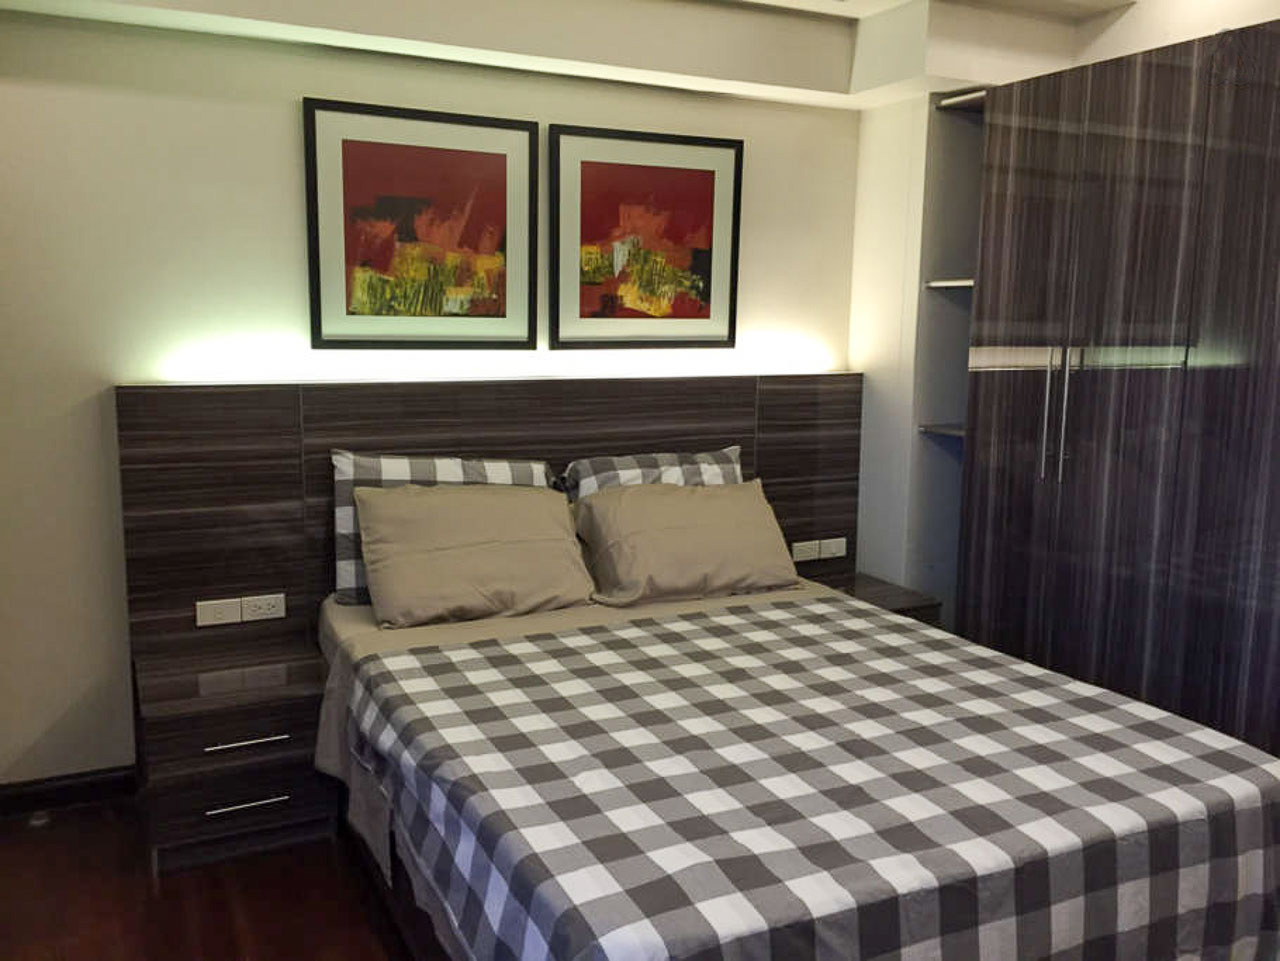 Condo for rent in avalon condominium cebu grand realty for 1 bedroom condo for rent